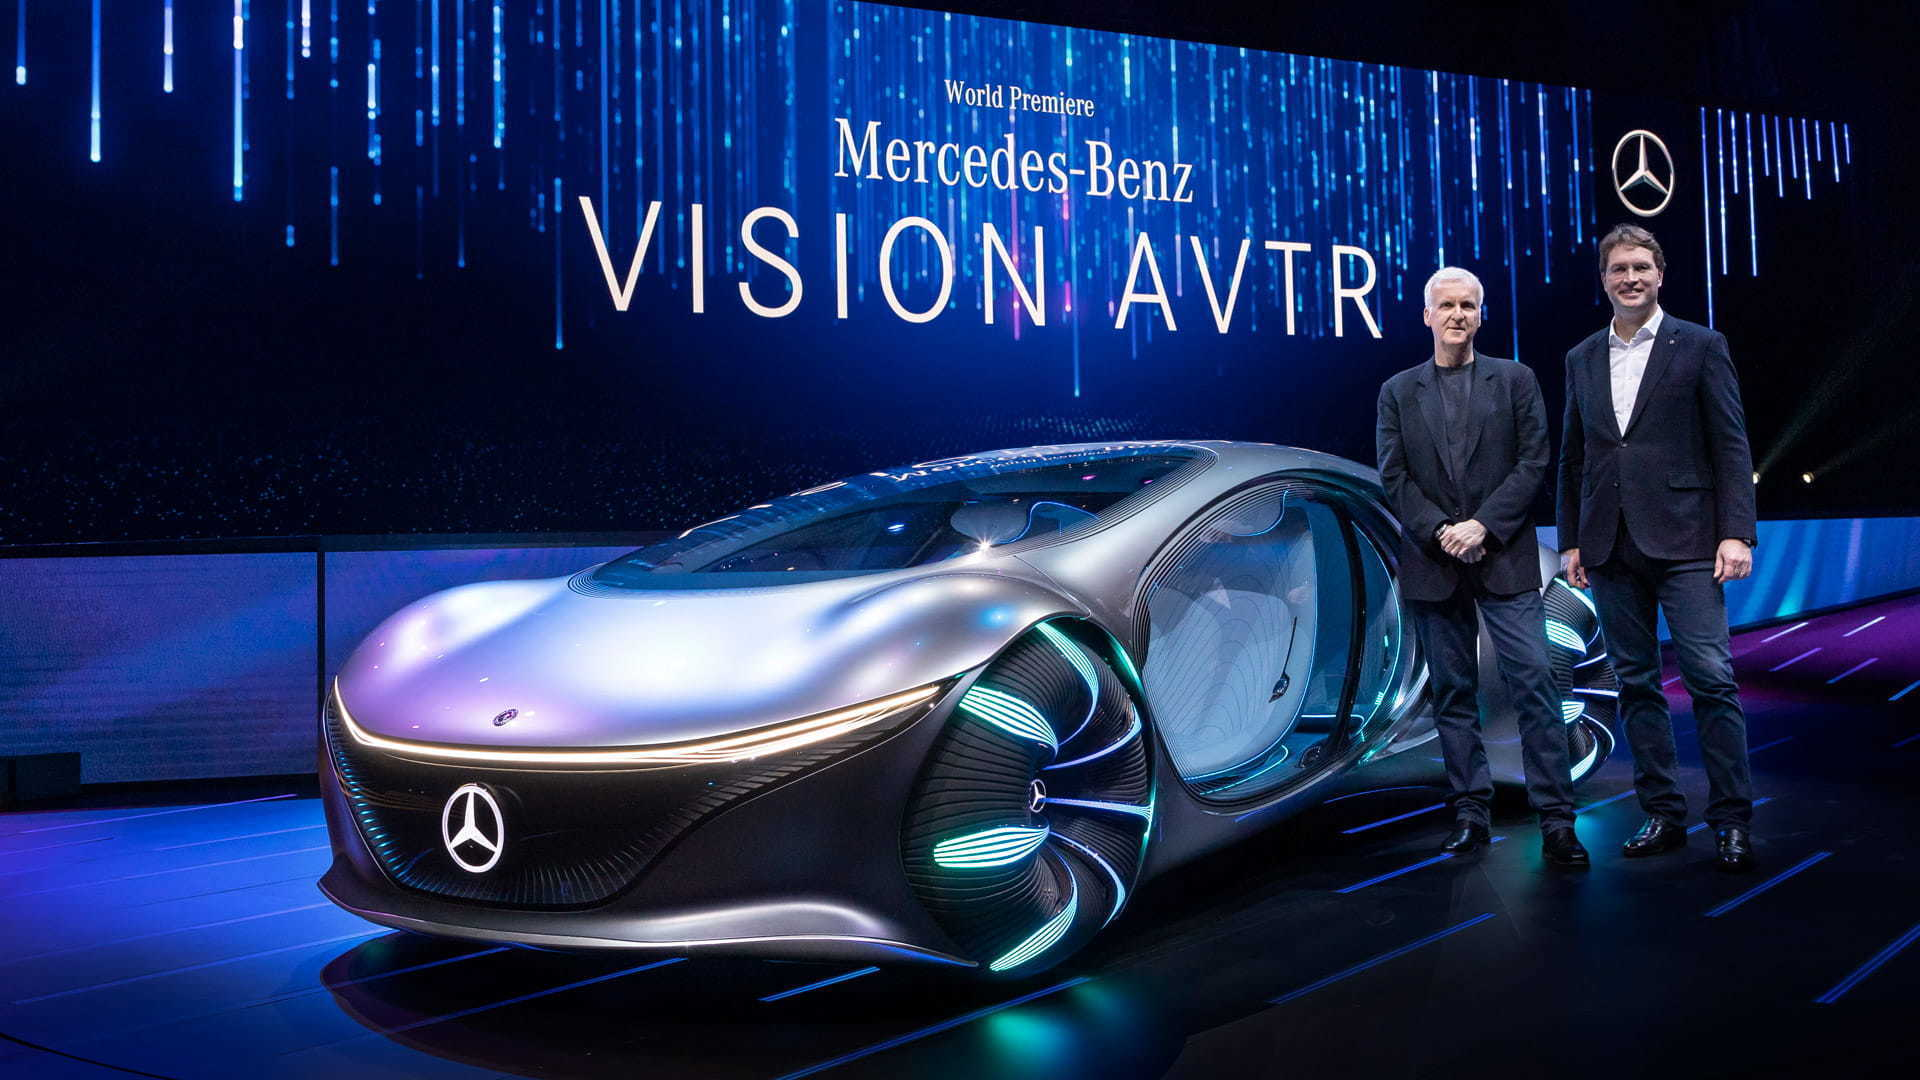 Director James Cameron and Mercedes-Benz CEO, Ola Källenius pose with the VISION AVTR at CES 2020.